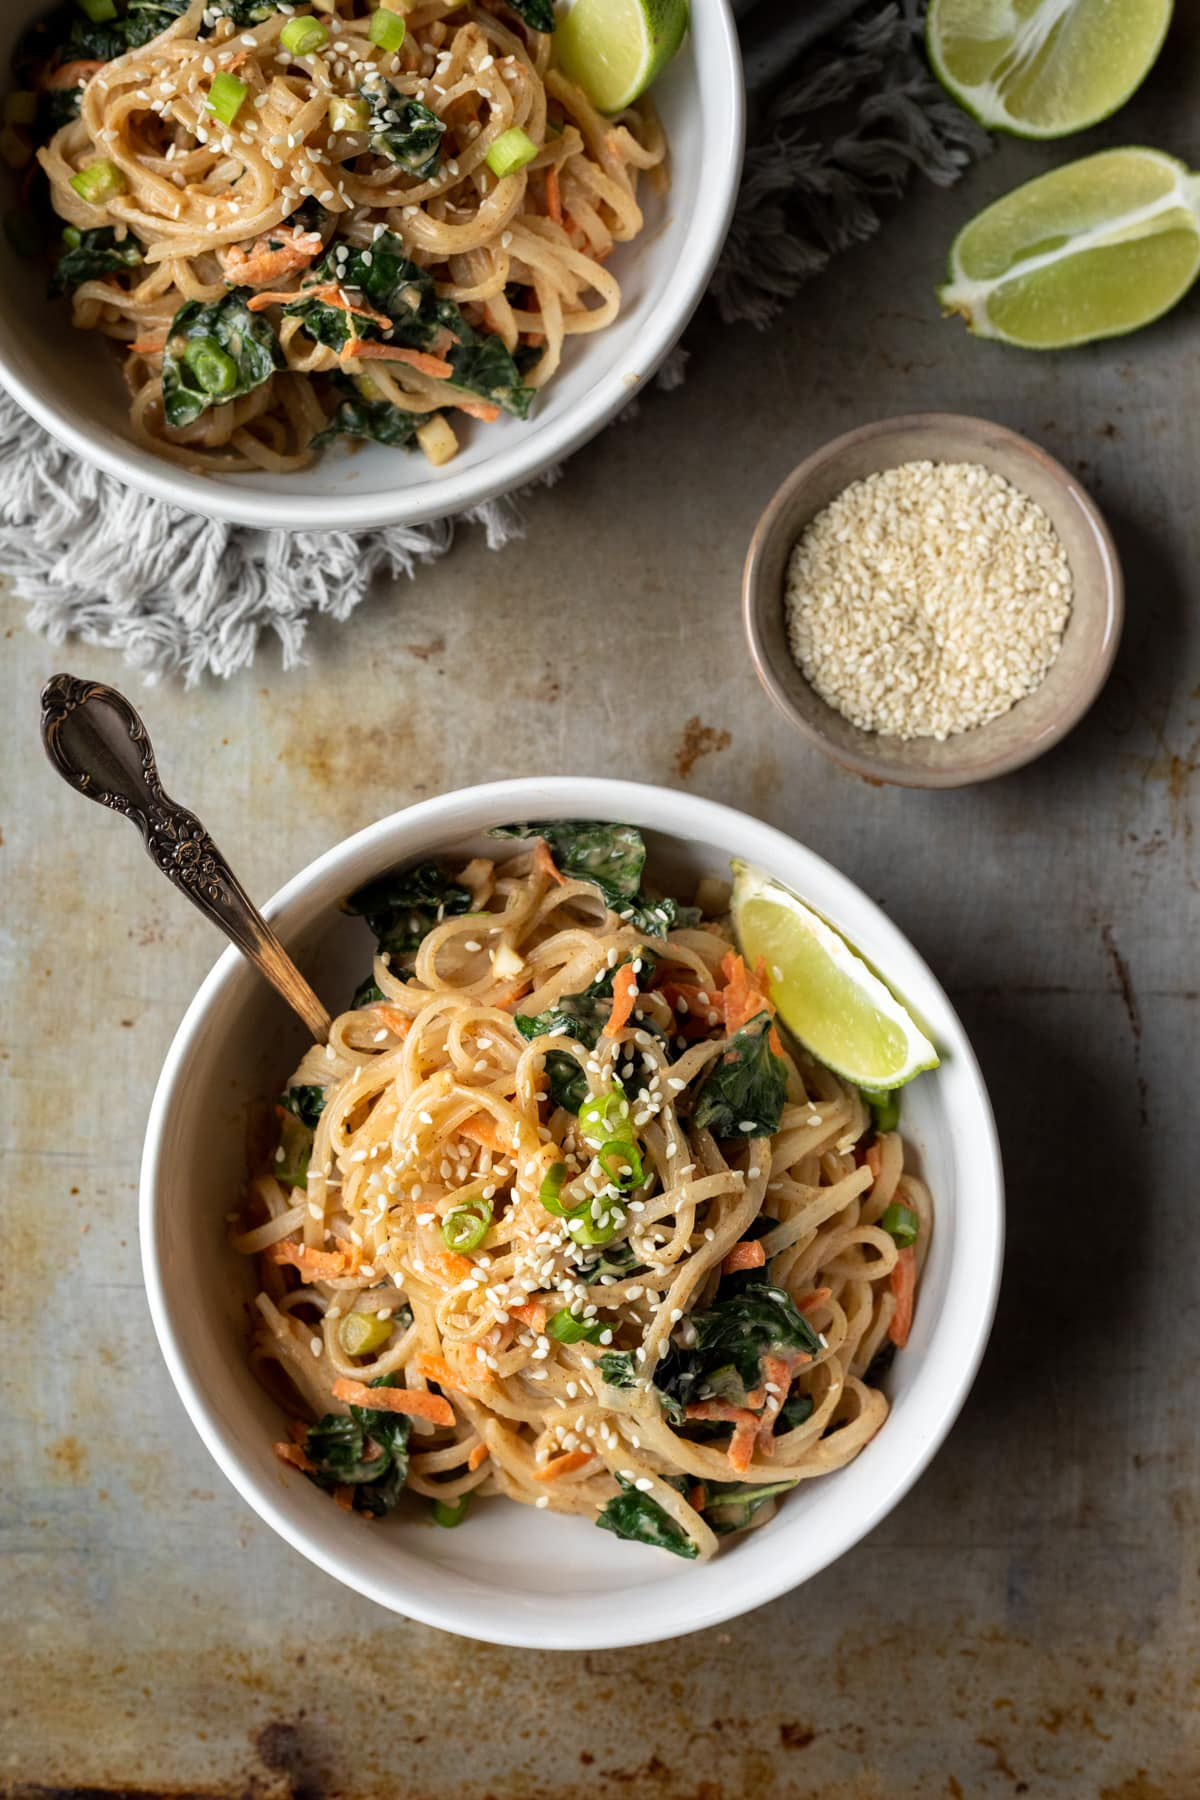 two servings of noodles in white bowls topped with green onion and lime wedge